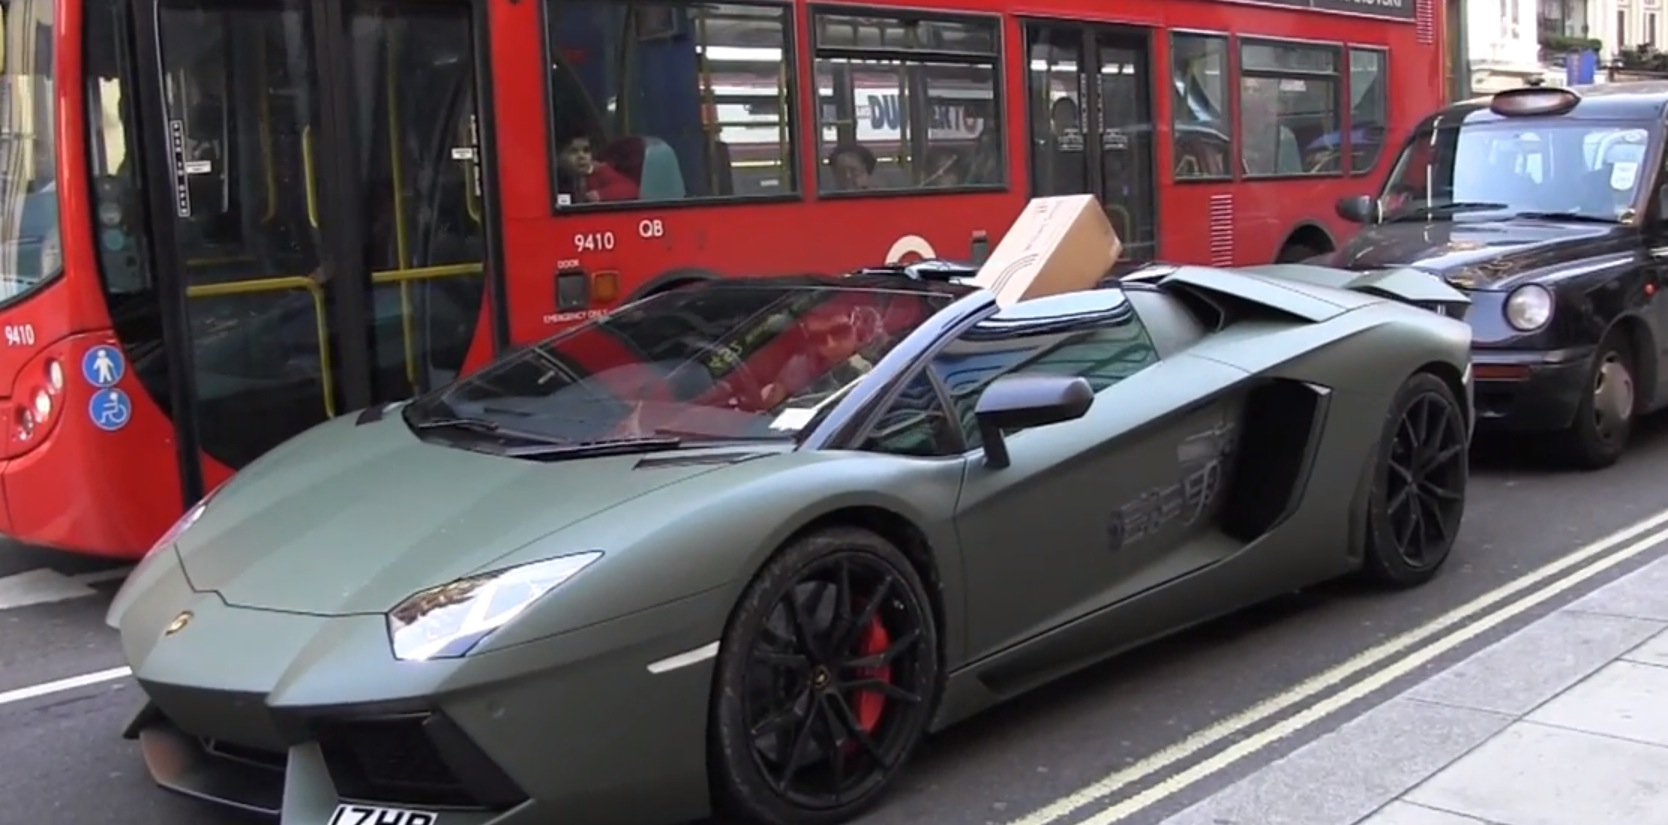 supercars in los angeles with Lamborghini Aventador Roadster Hauling Christmas Presents In London Is Funny Video 90420 on 1101147 hoonigans Tackle Abandoned Mall Tokyo Drift Style In Black Friday Preparation Video additionally 1114220 report Ubers Chinese Rival Didi To Expand To North America also 1103602 jay Leno Tests Out The Wild Ford Festiva Based Shogun also 1110603 2019 Jaguar I Pace Spotted During Photo Shoot further 1100728 2019 Volvo Xc40 Spy Shots And Video.